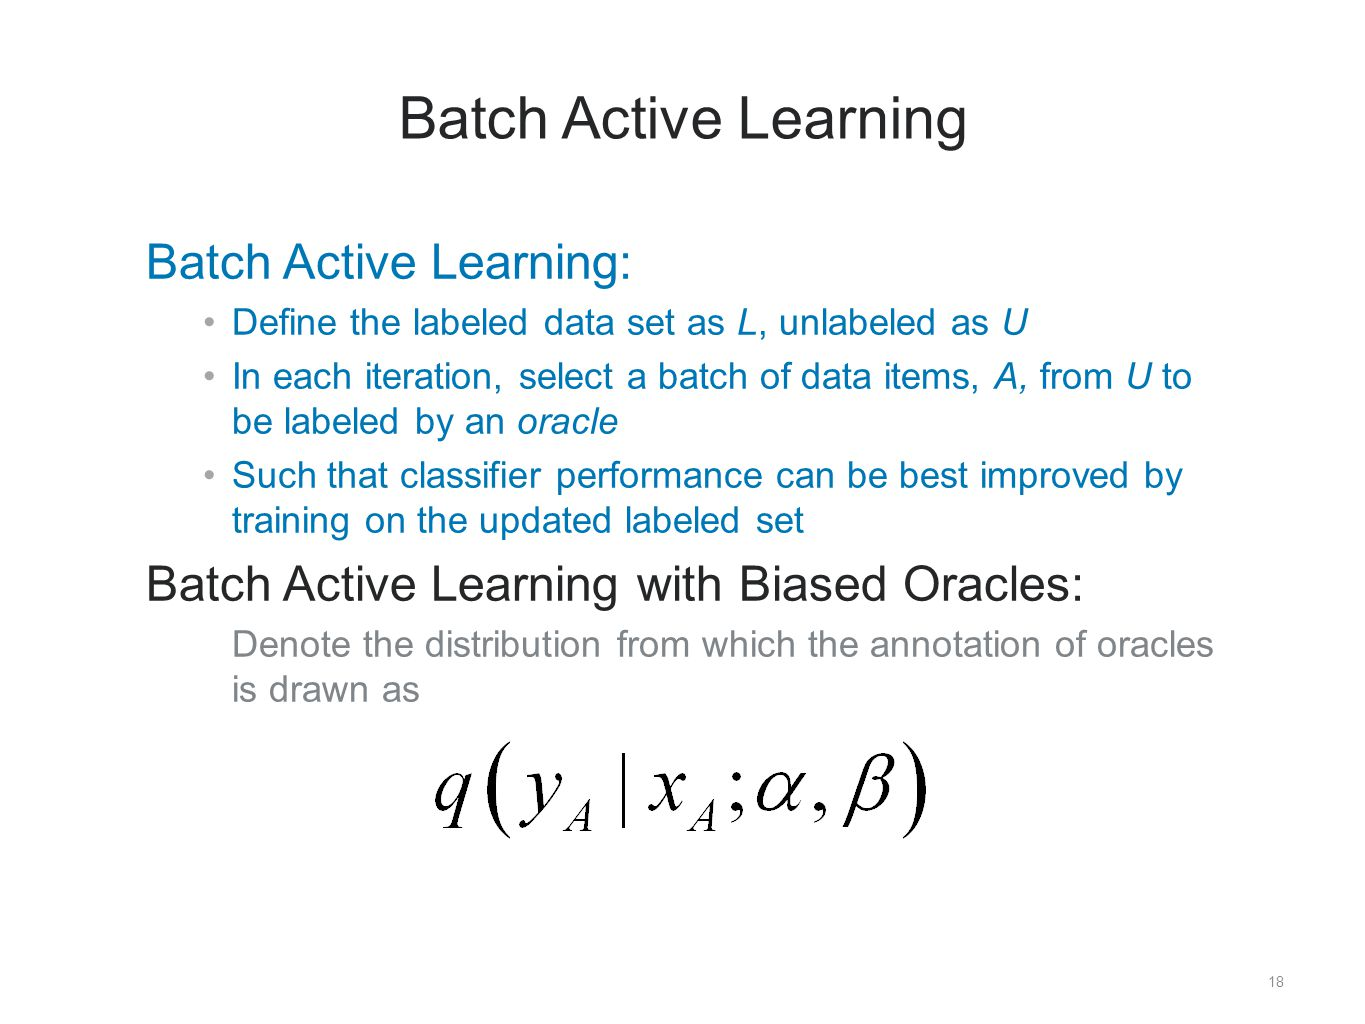 18 Batch Active Learning ​ Batch Active Learning: Define the labeled data set as L, unlabeled as U In each iteration, select a batch of data items, A, from U to be labeled by an oracle Such that classifier performance can be best improved by training on the updated labeled set ​ Batch Active Learning with Biased Oracles: ​ Denote the distribution from which the annotation of oracles is drawn as